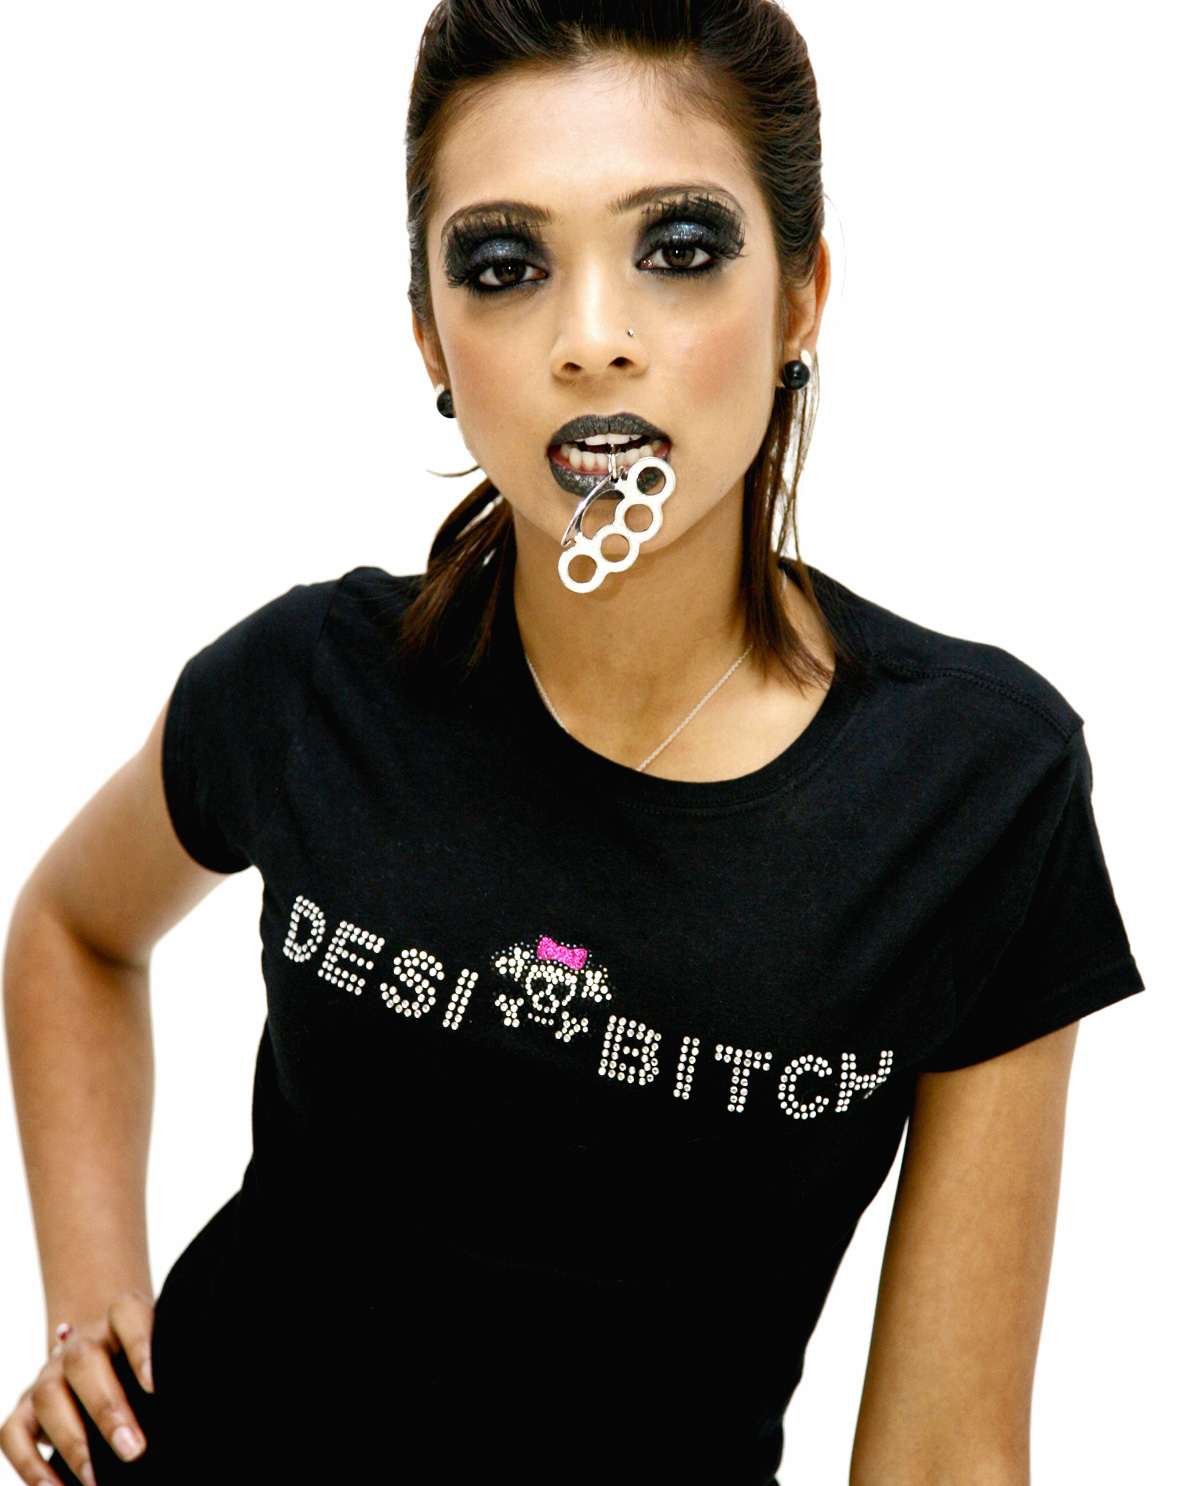 South Asian female wearing Desi Bitch rhinestone shirt.